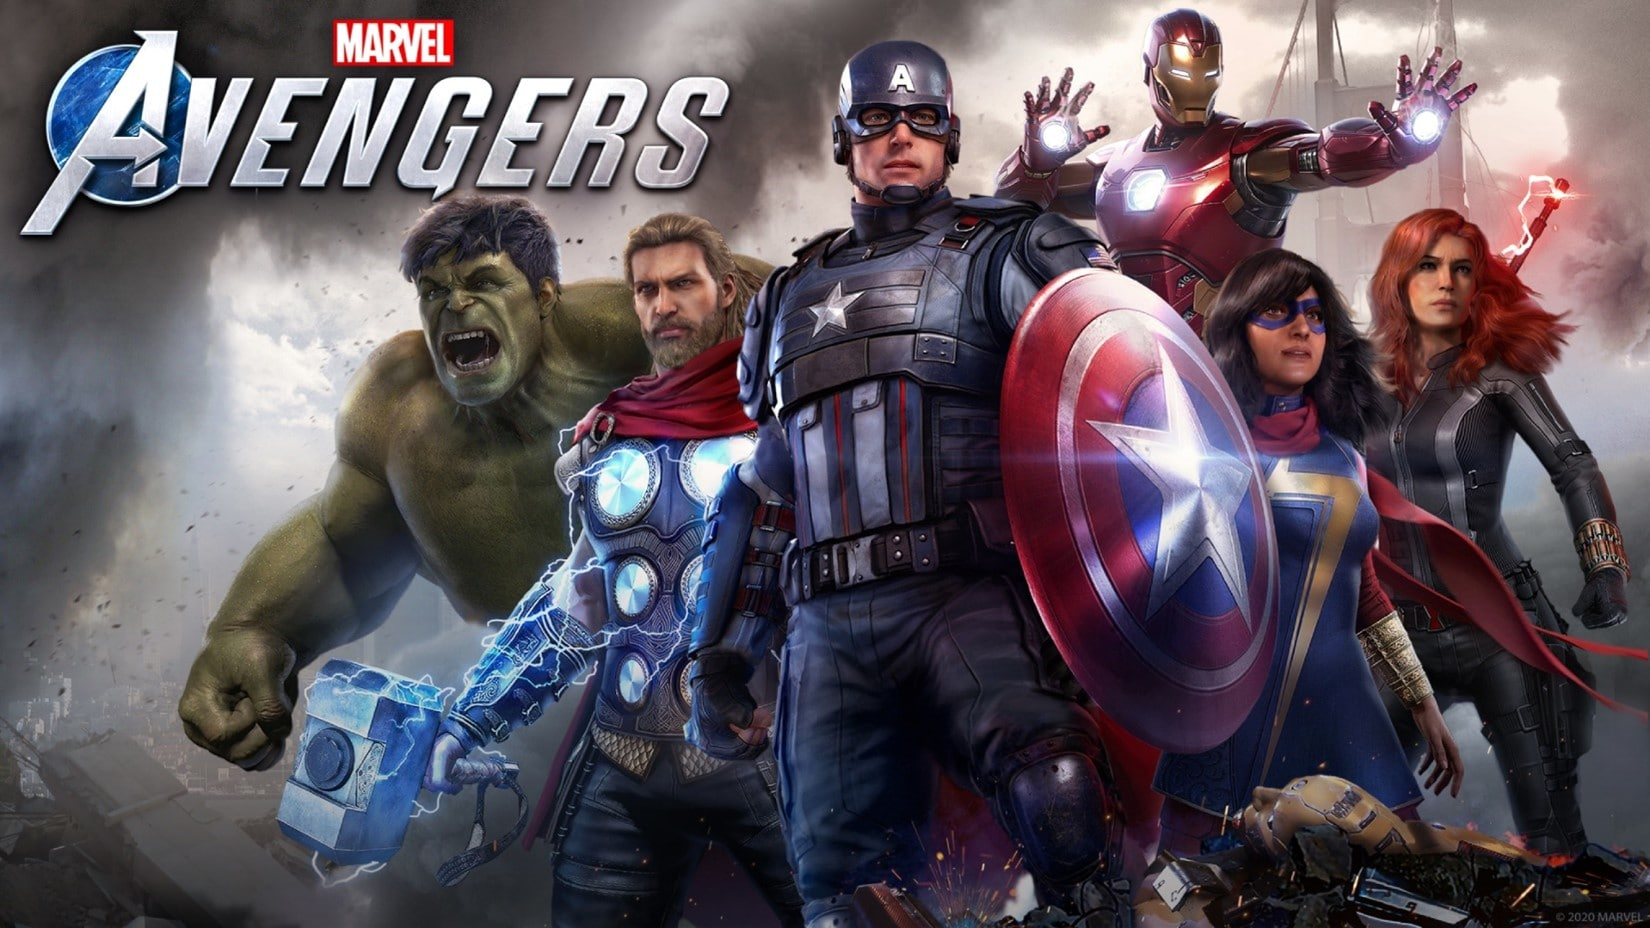 Marvel's Avengers is Getting New Content…Eventually